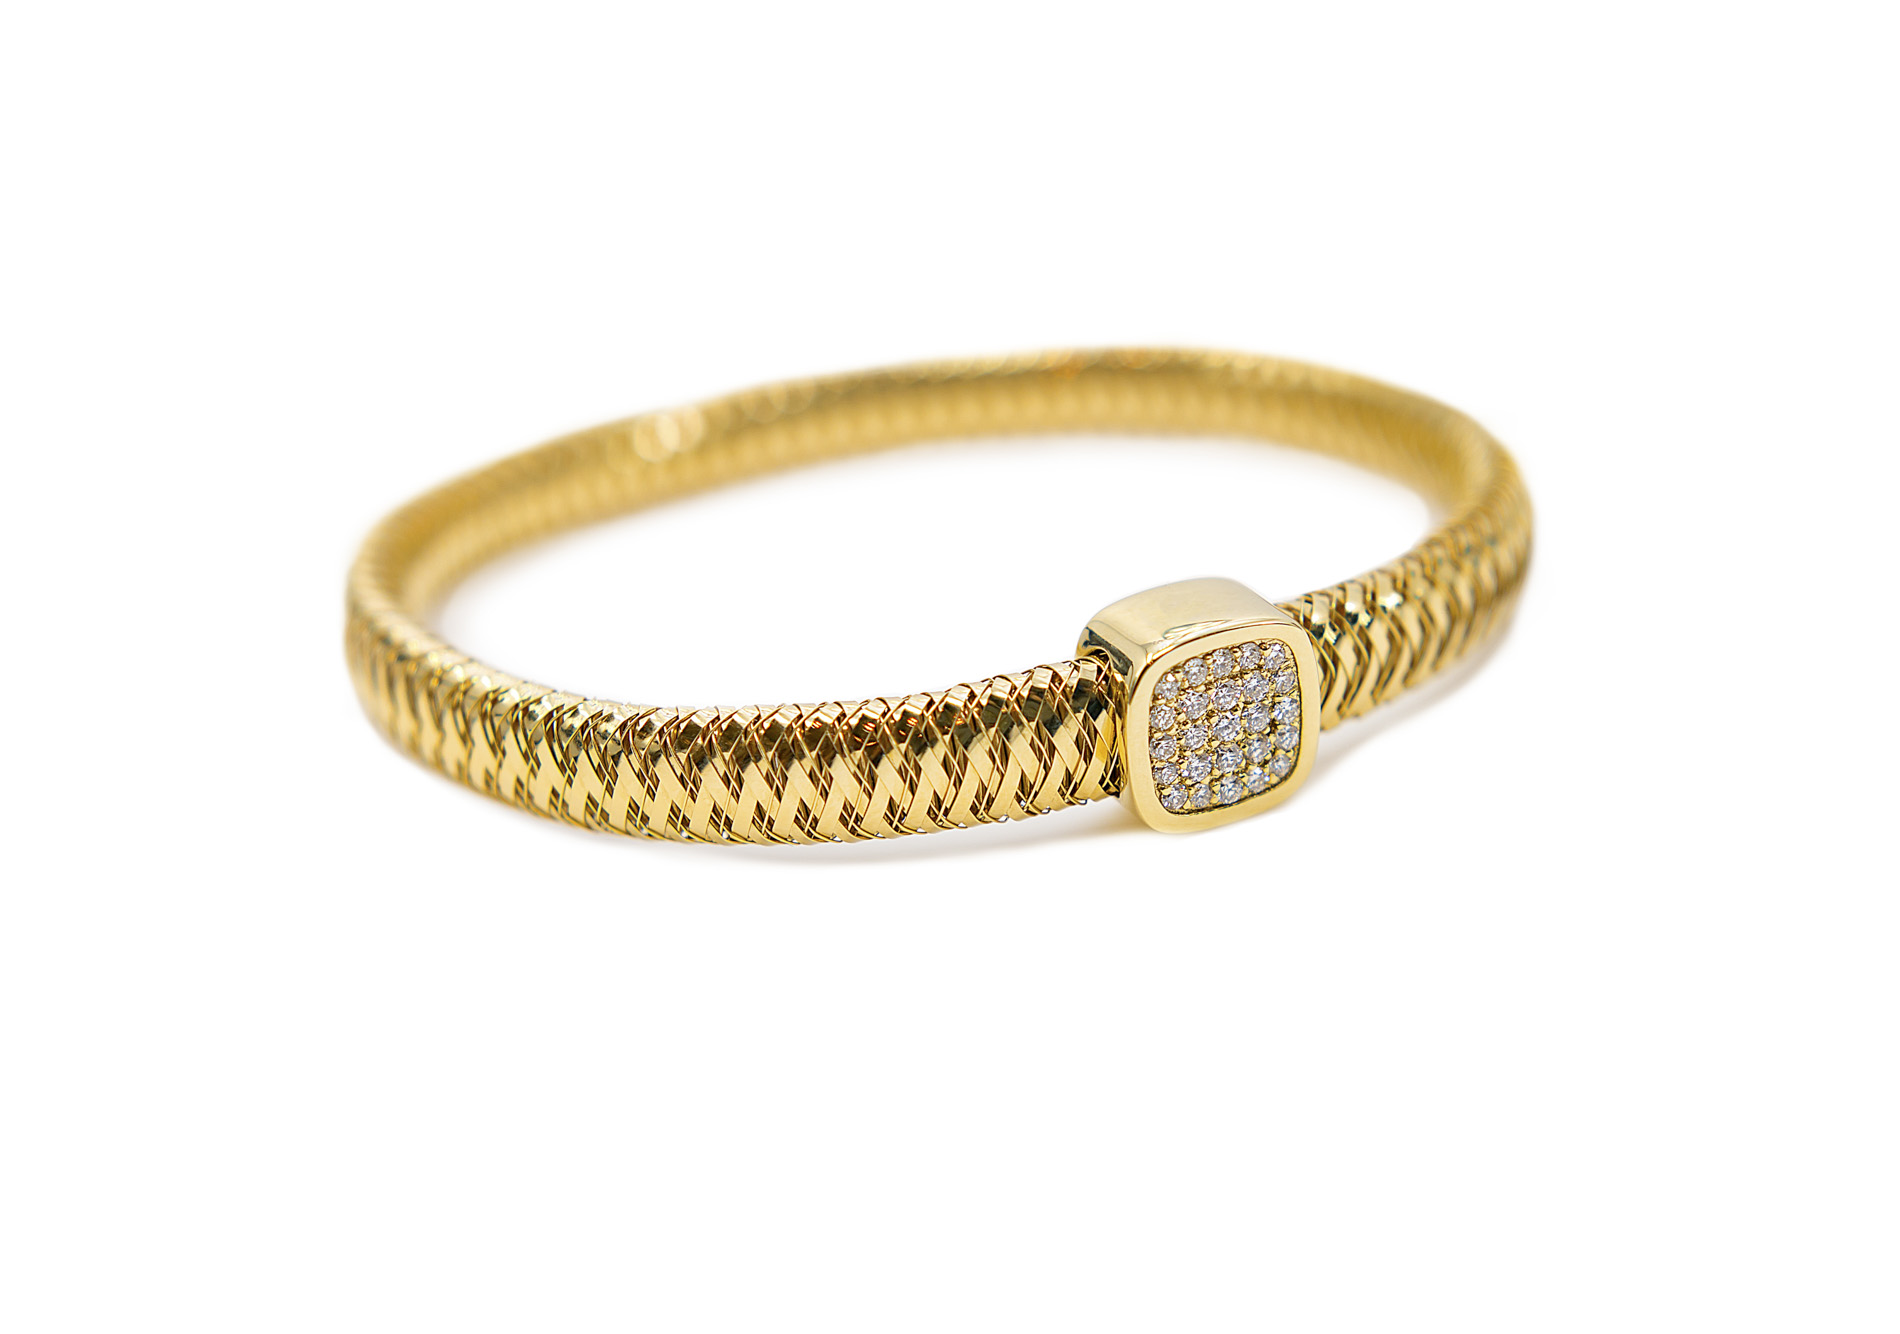 18k Yellow Gold Roberto Coin Bracelet